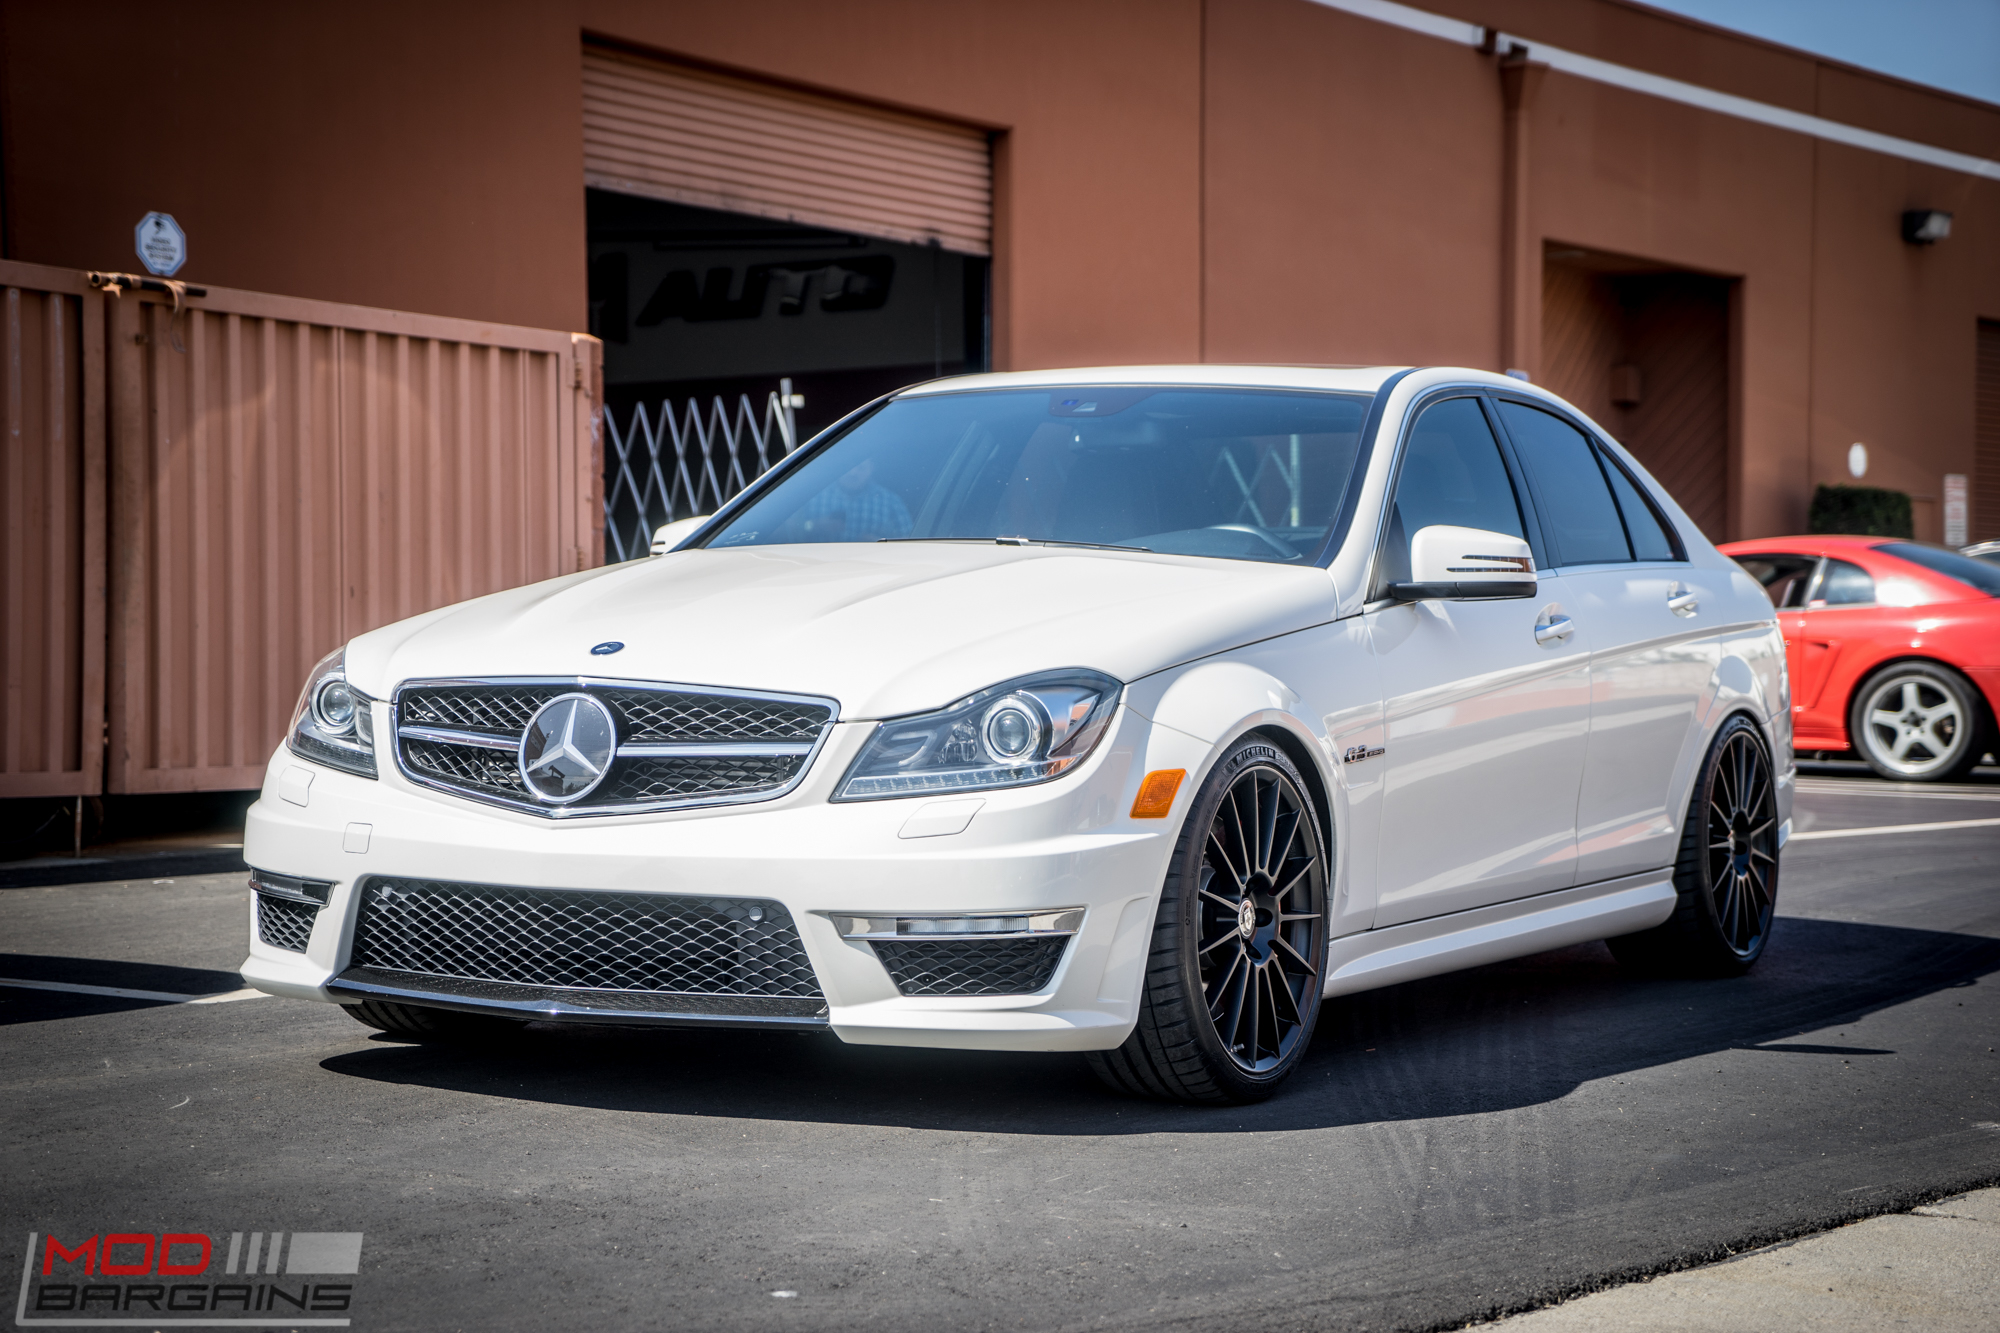 w204 c63 amg on hre ff15s tries new michelin pilot 4s. Black Bedroom Furniture Sets. Home Design Ideas